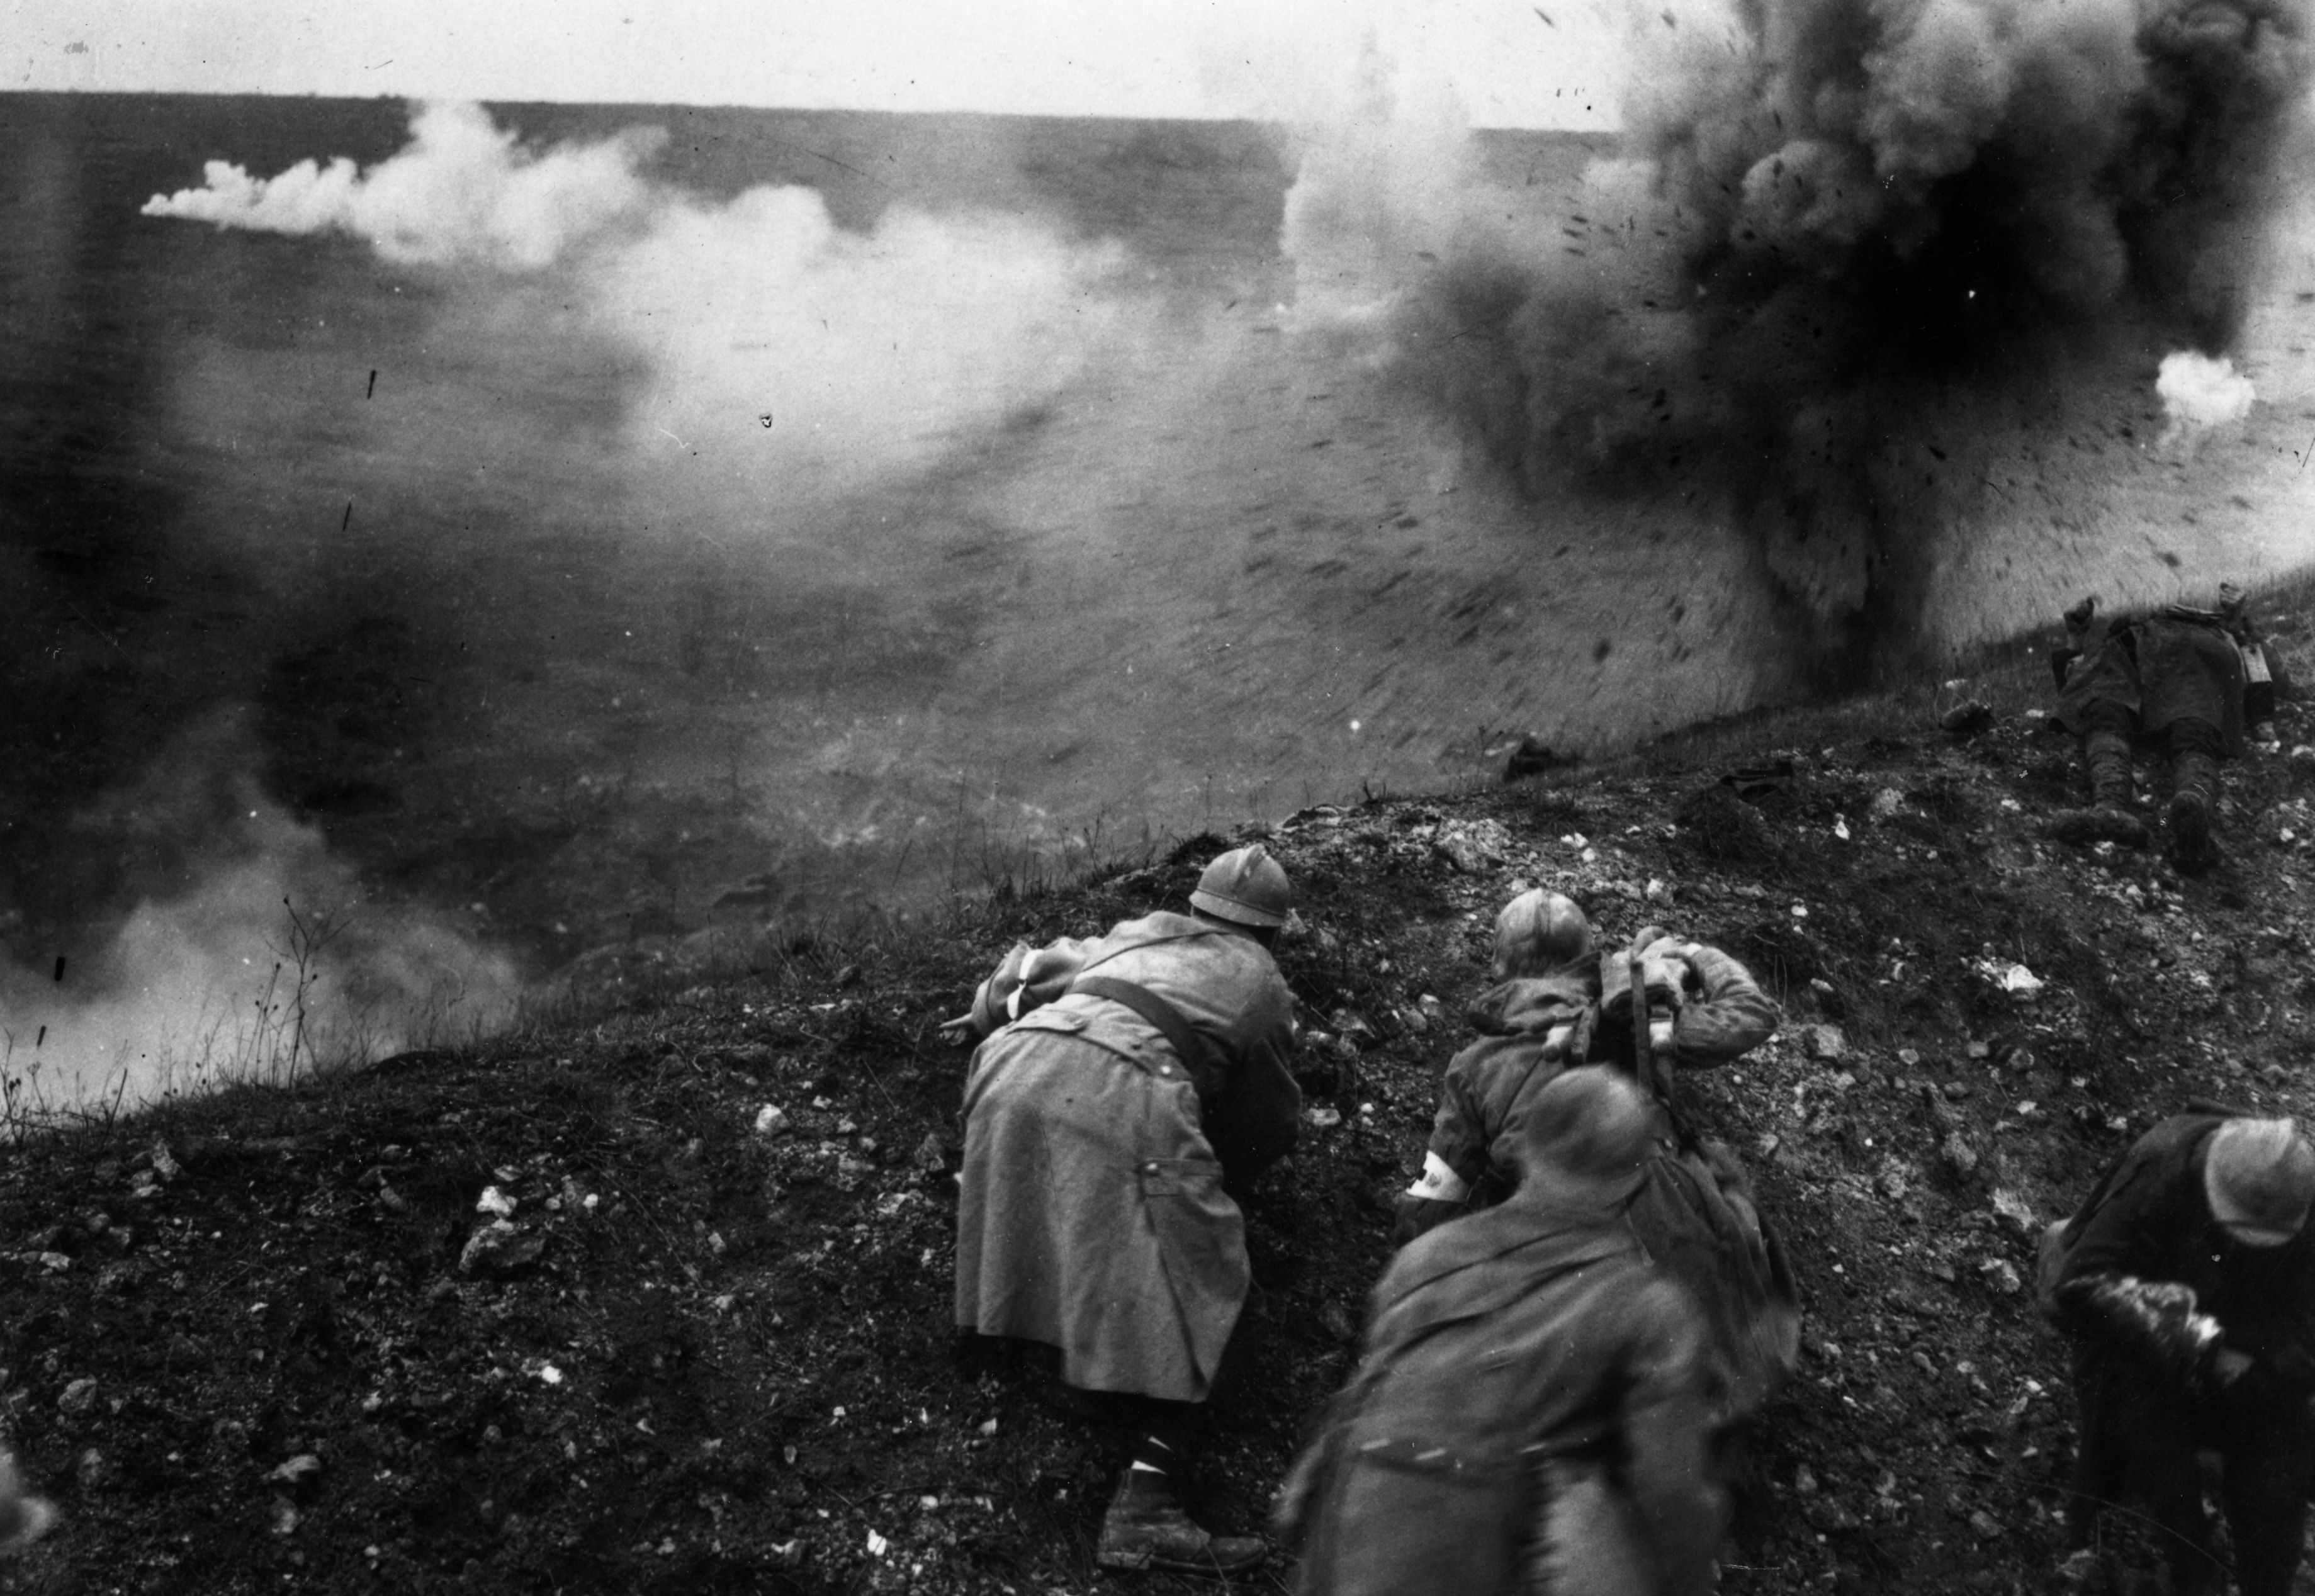 French troops under shellfire during the battle of Verdun. (Photo by General Photographic Agency/Getty Images)